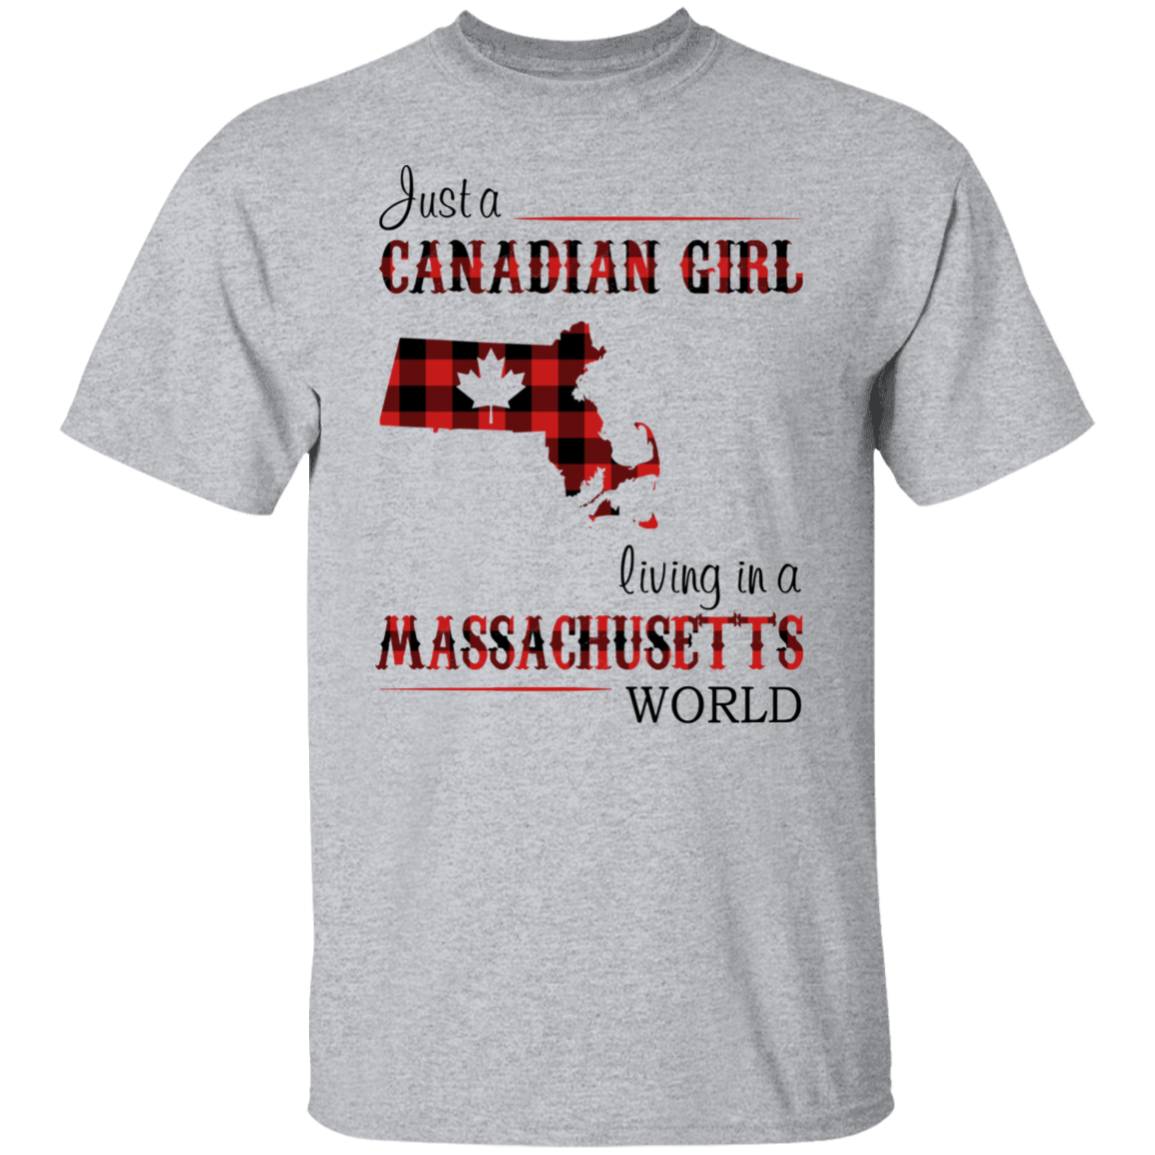 JUST A CANADIAN GIRL LIVING IN A MASSACHSUETTS WORLD